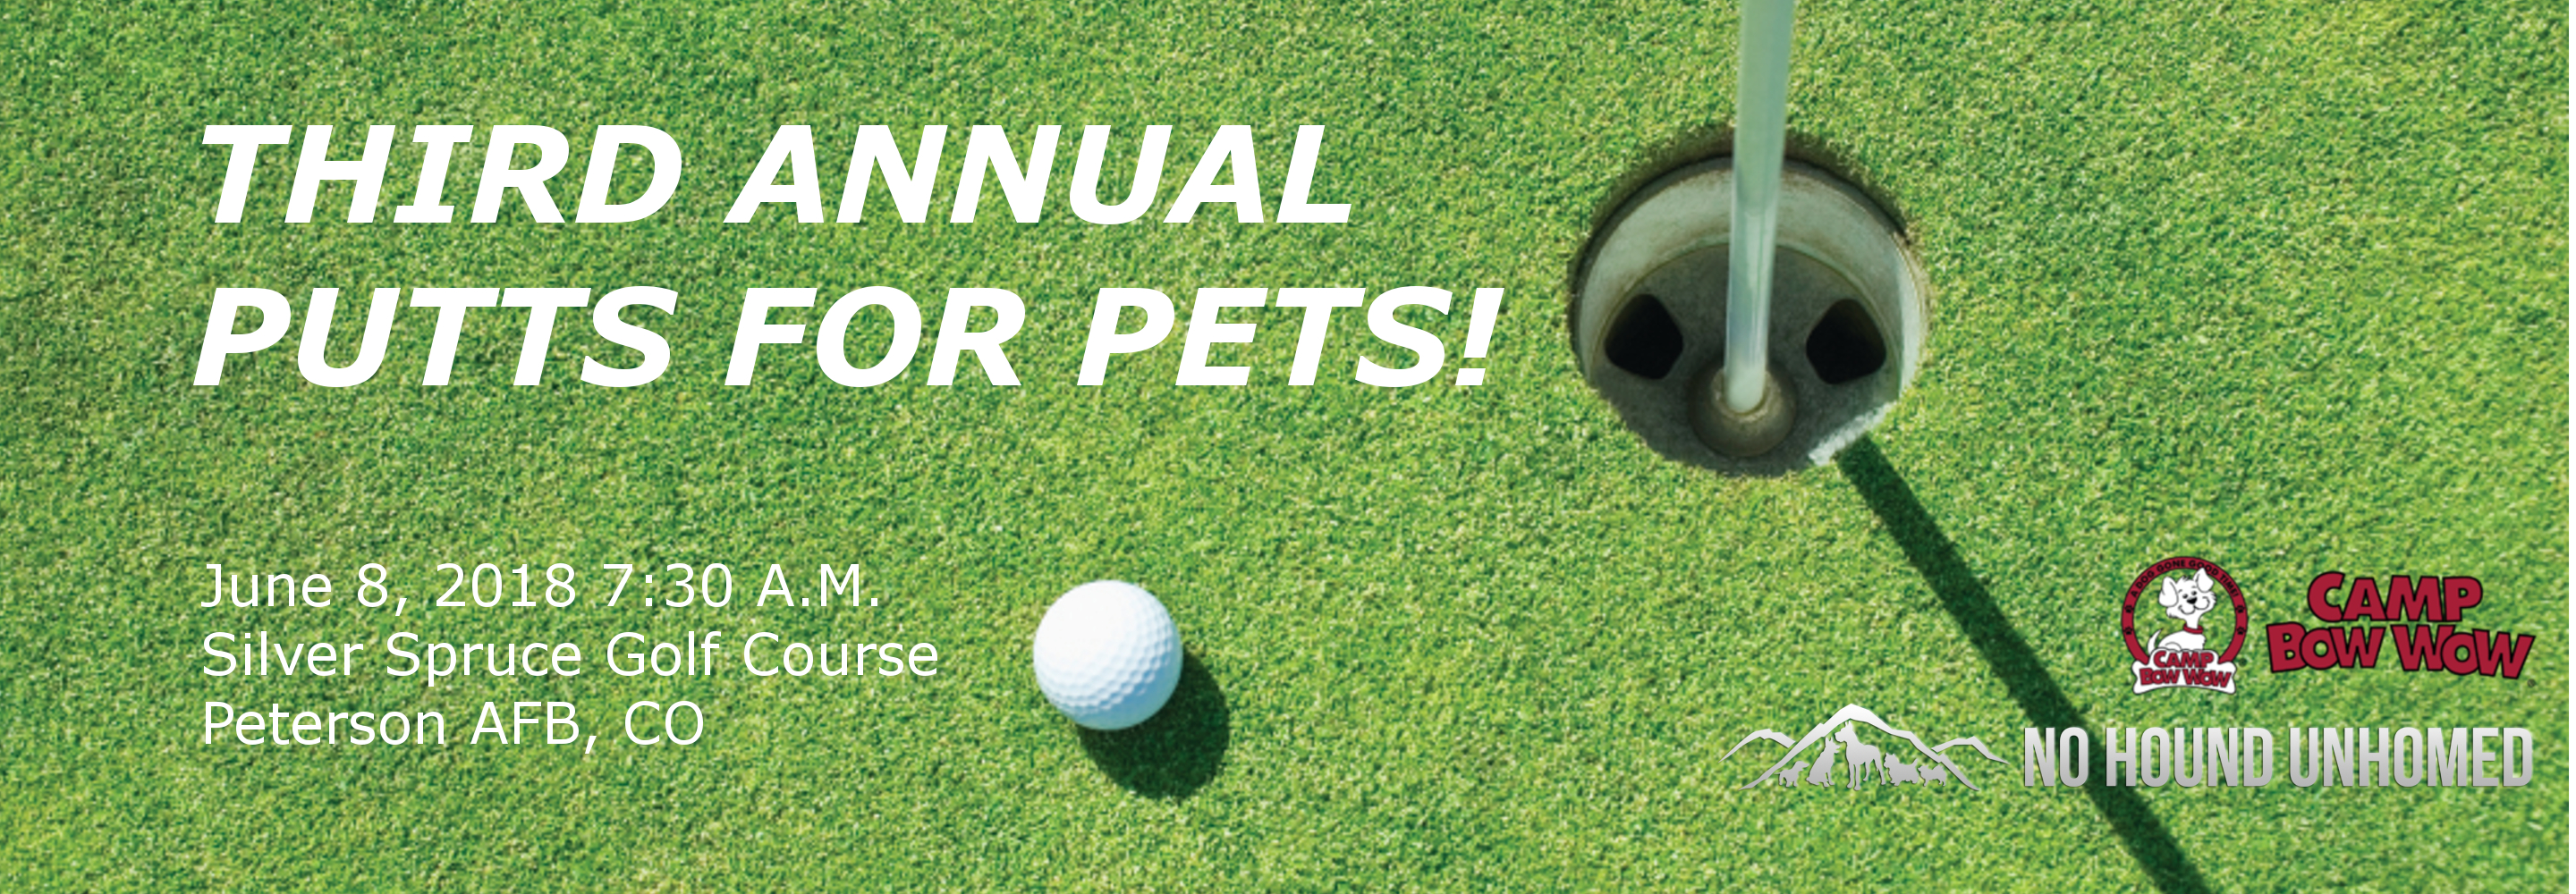 3rd Annual Putts for Pets